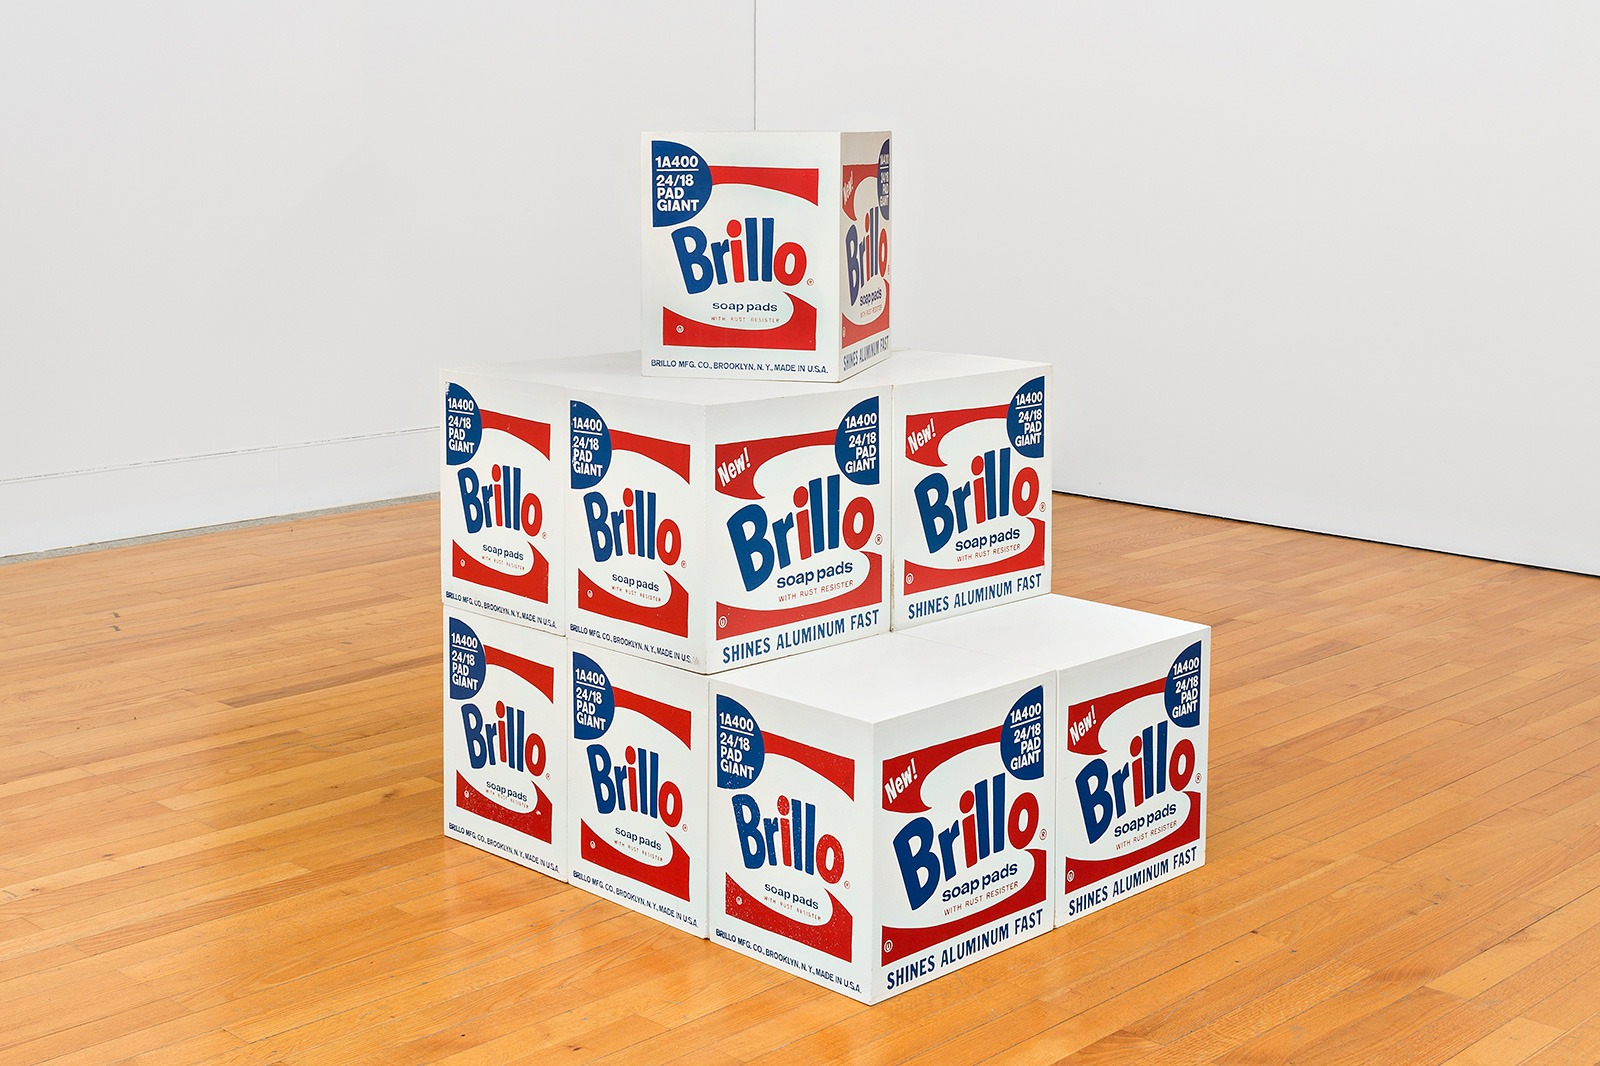 Brillo Box. 964-68. Screenprint and acrylic on plywood. Museu Coleção Berardo, Lisbon. Copyright: 2017 The Andy Warhol Foundation for the Visual Arts, Inc. / VEGAP.